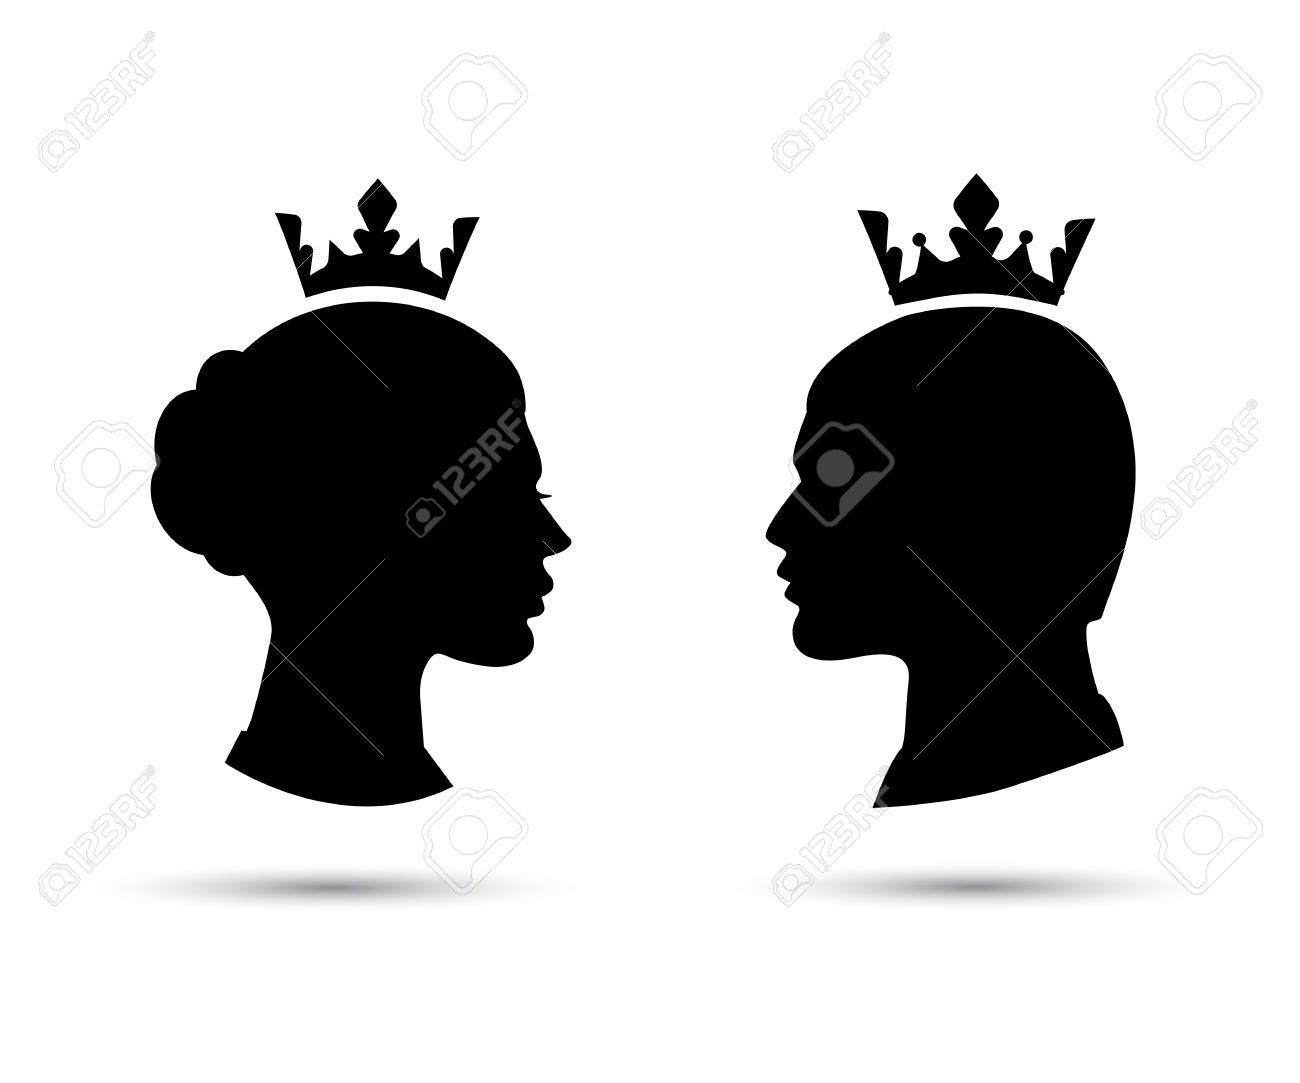 1300x1083 King And Queen Heads, King And Queen Face, Black Silhouette